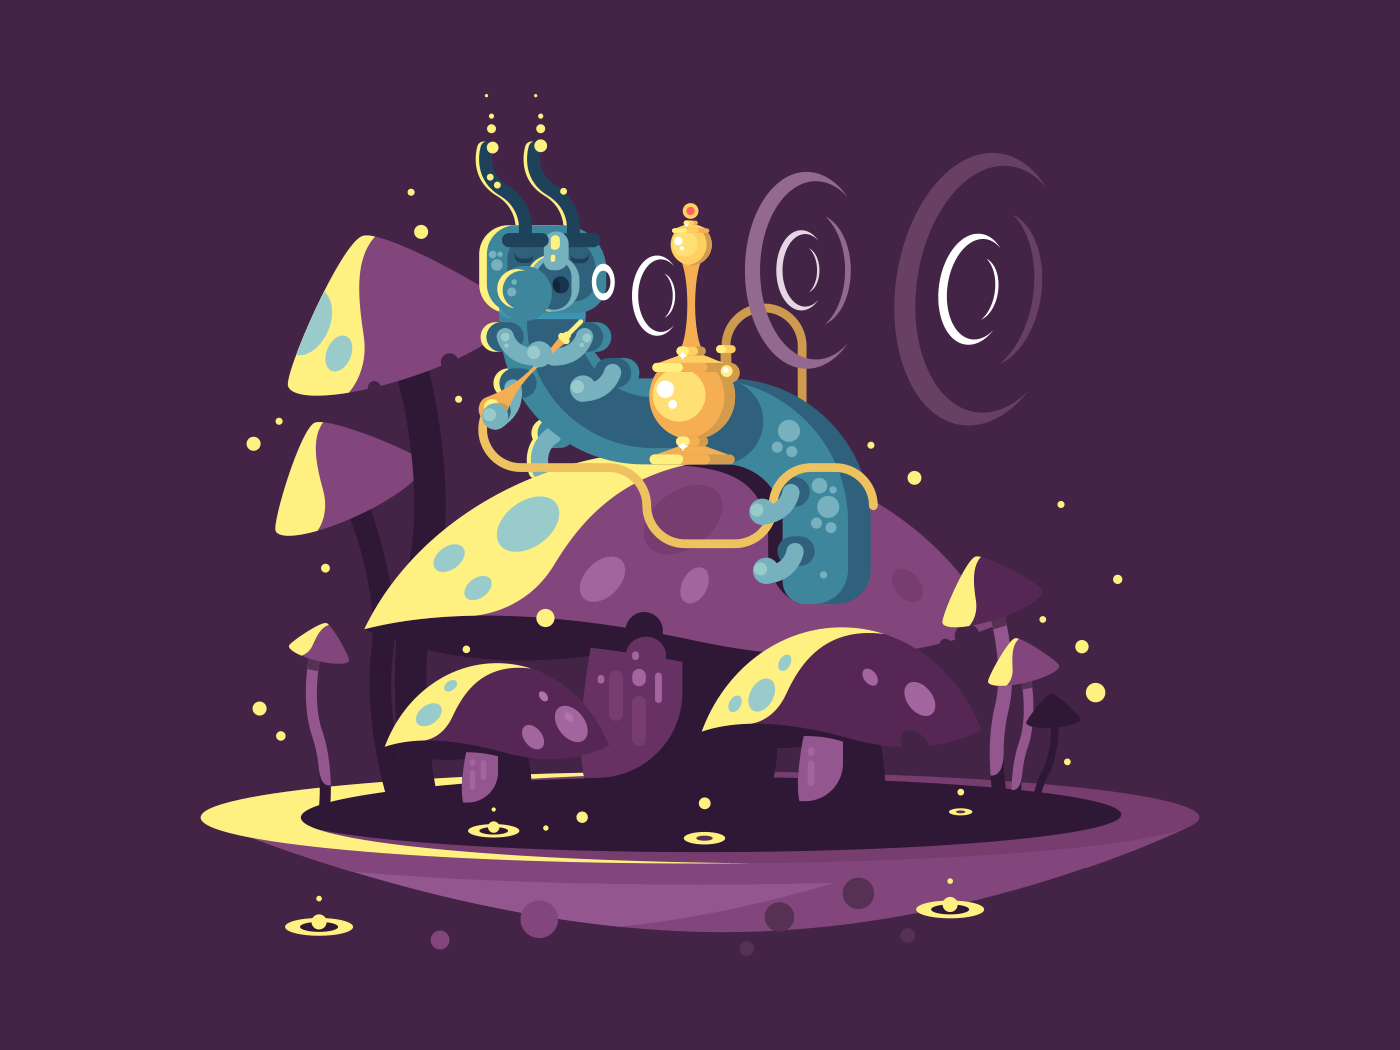 Absolem character from Alice in wonderland flat vector illustration